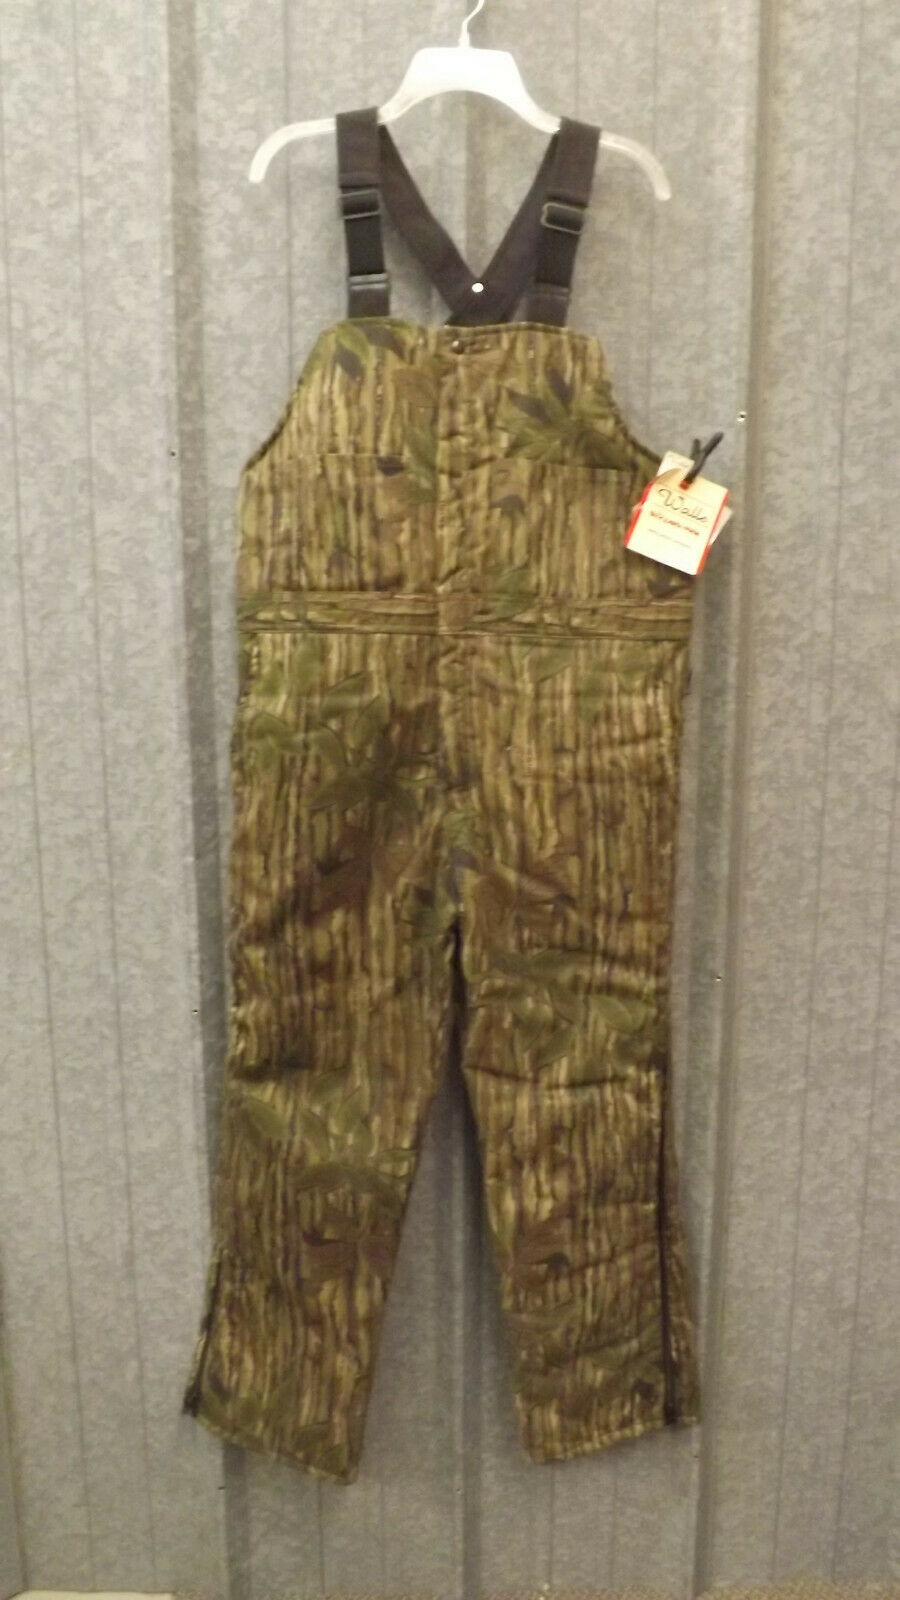 Vtg NEW Walls Blizzard-Pruf Realtree Green Leaf Camo Bib  O lls XL w Quarpel  40% off